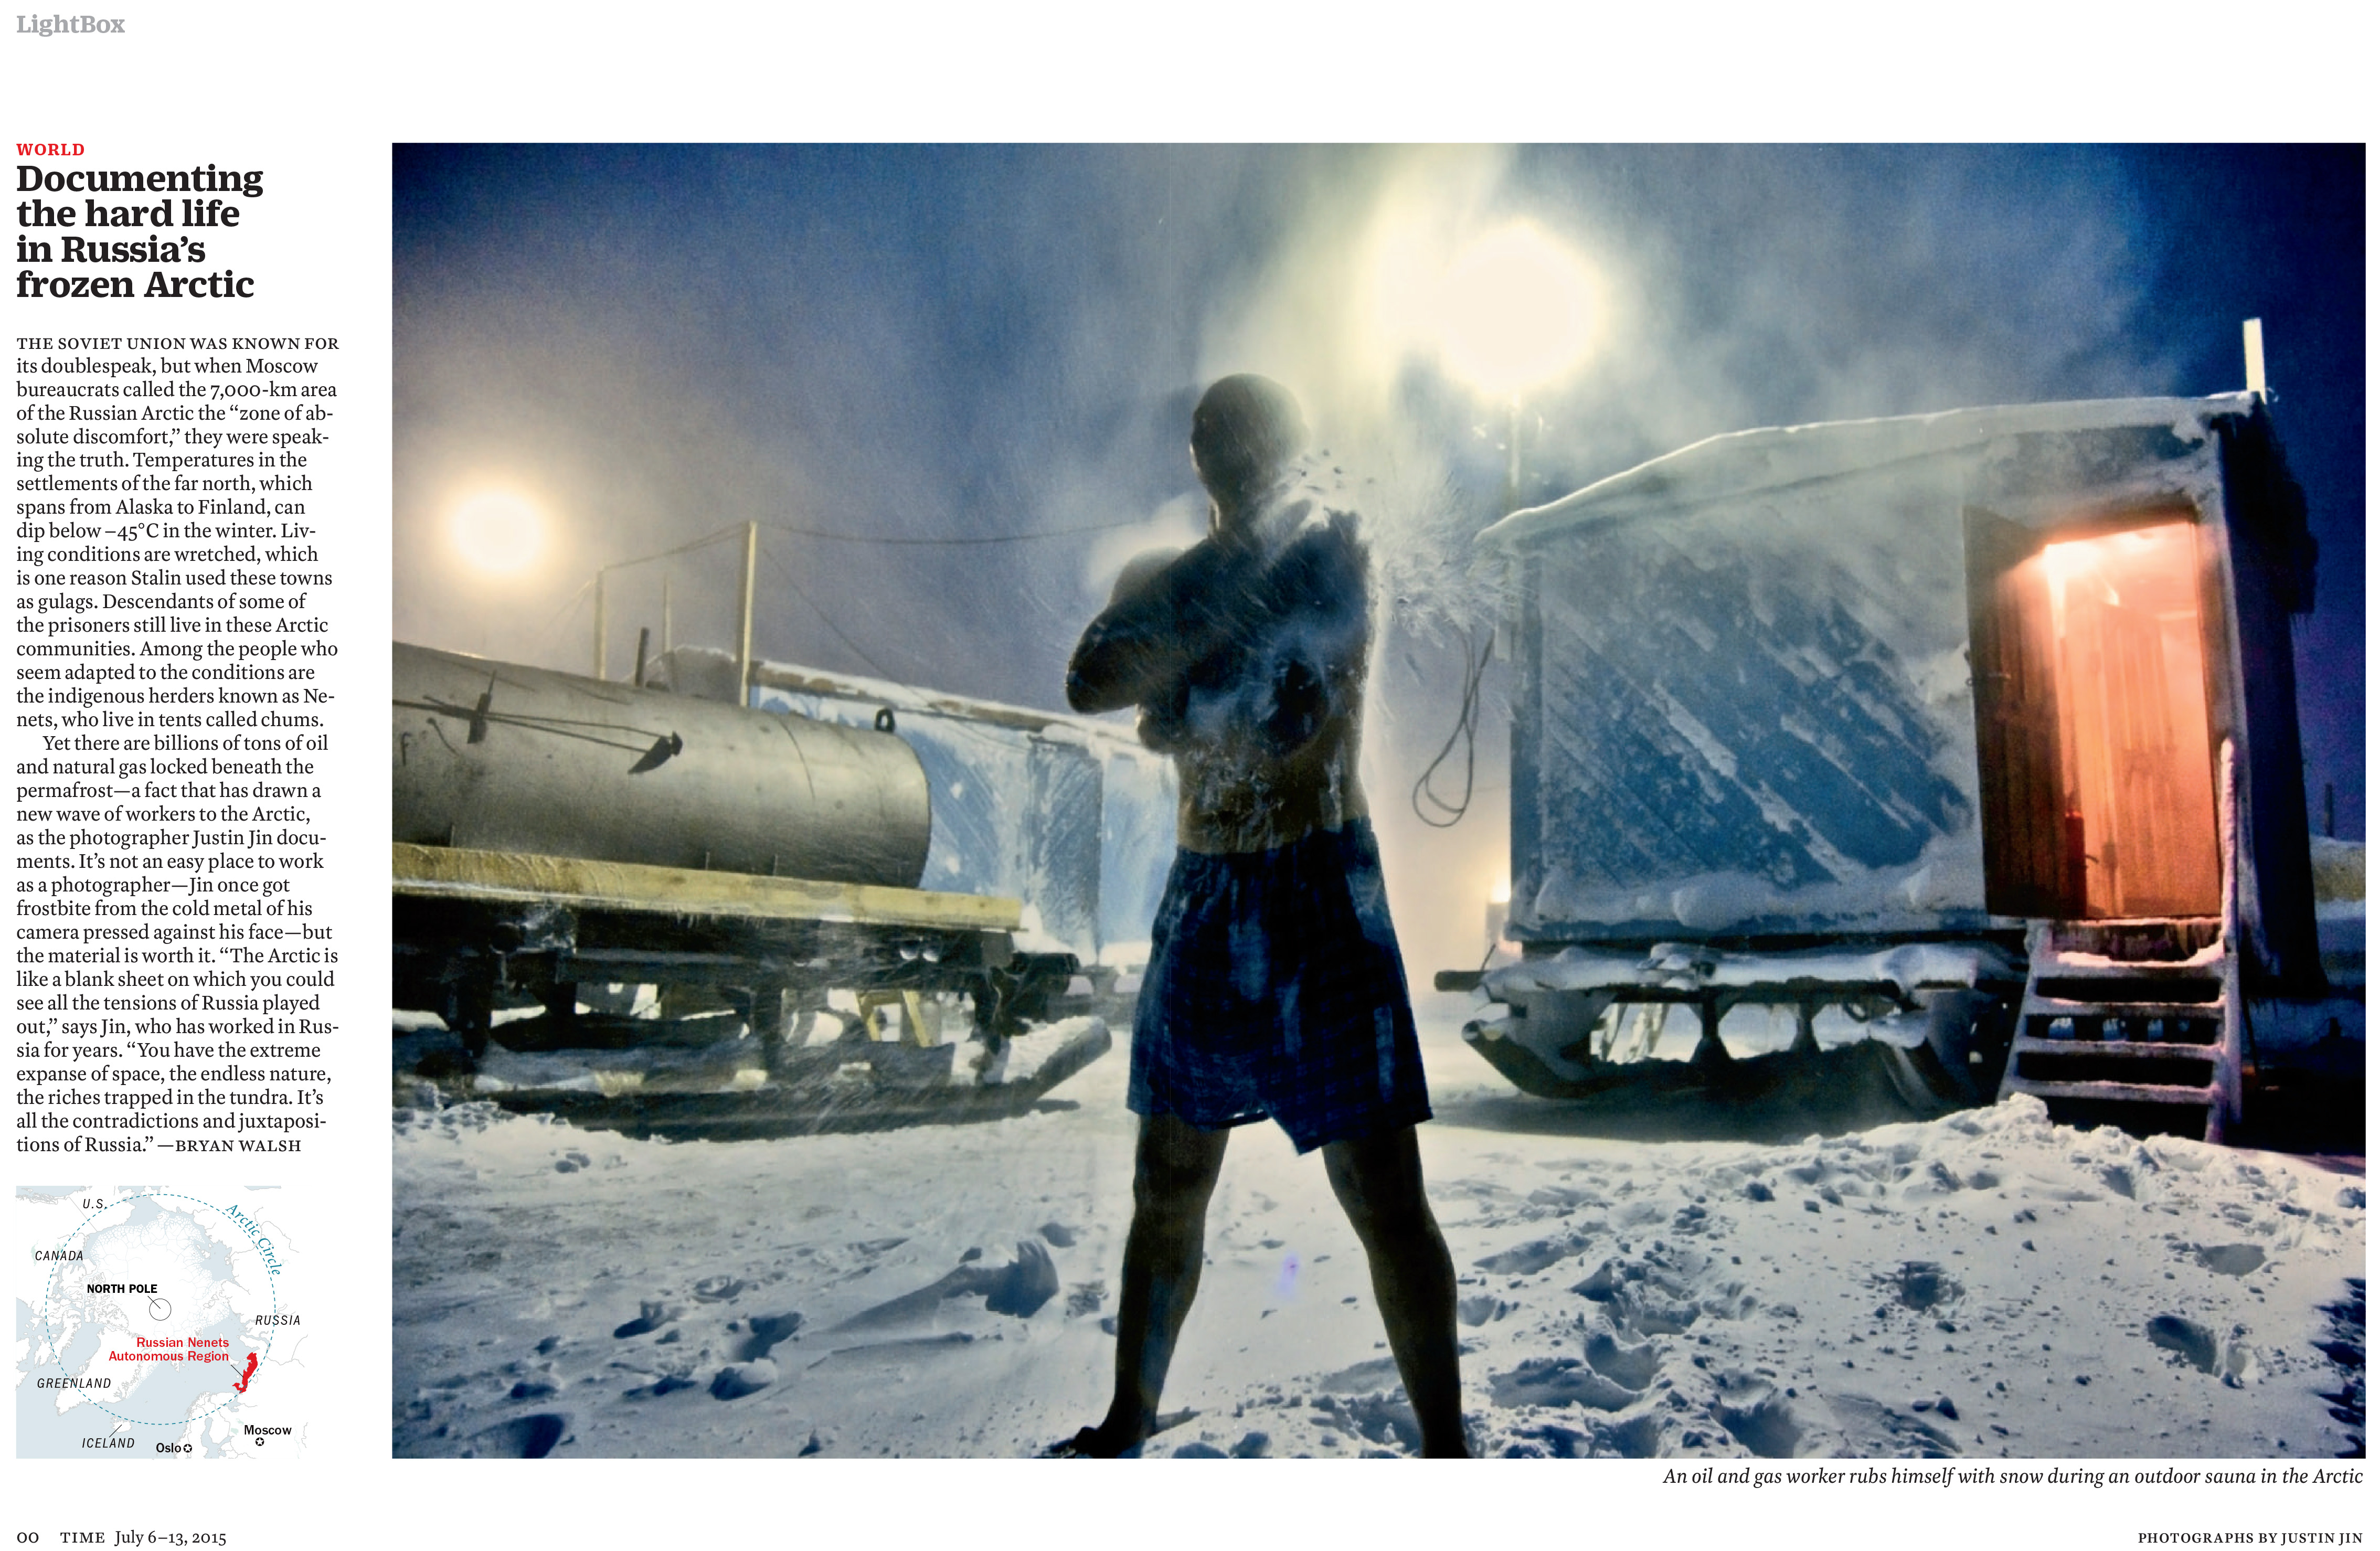 Documenting the hard life in Russia's frozen Arctic